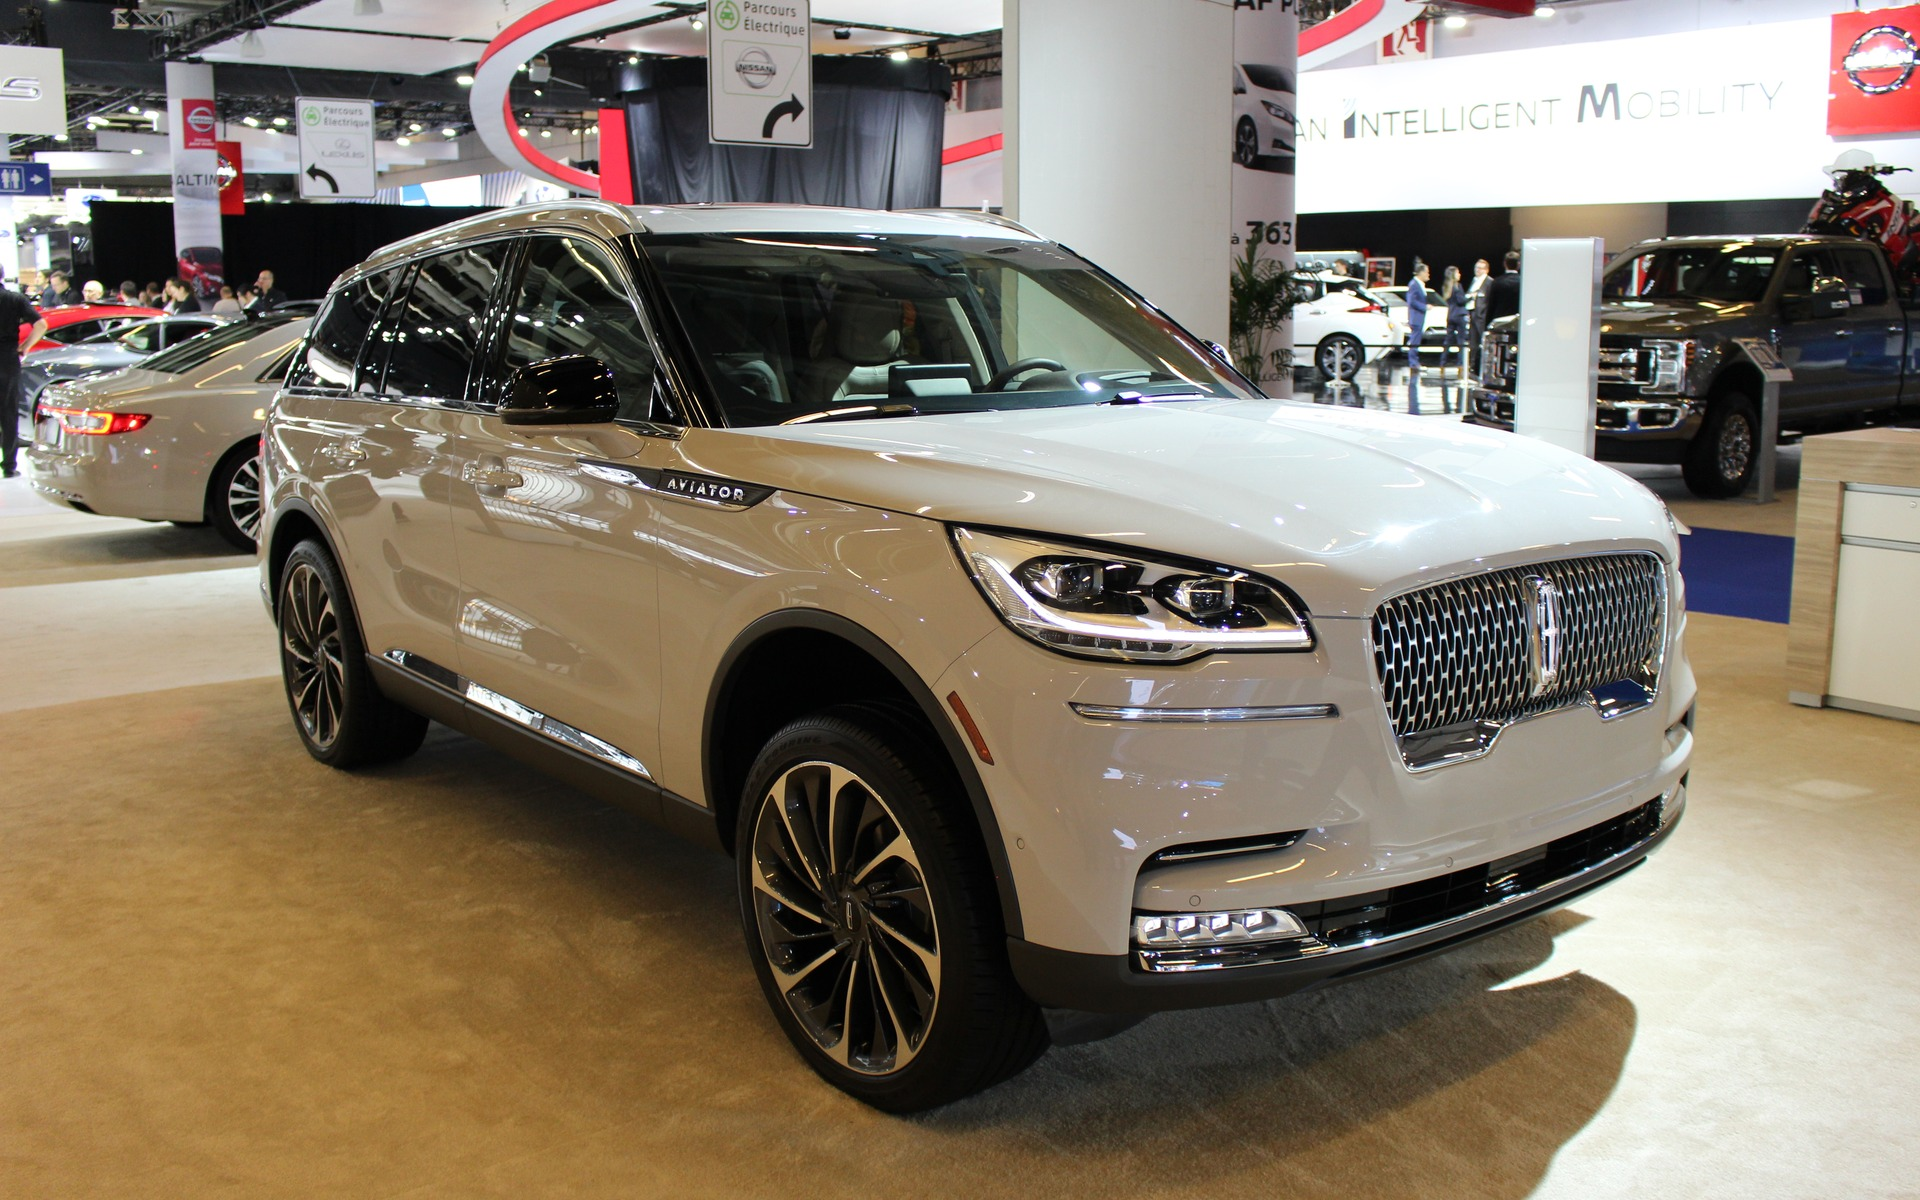 2020 Auto Show Schedule.2020 Lincoln Aviator Unveiled At The Montreal Auto Show